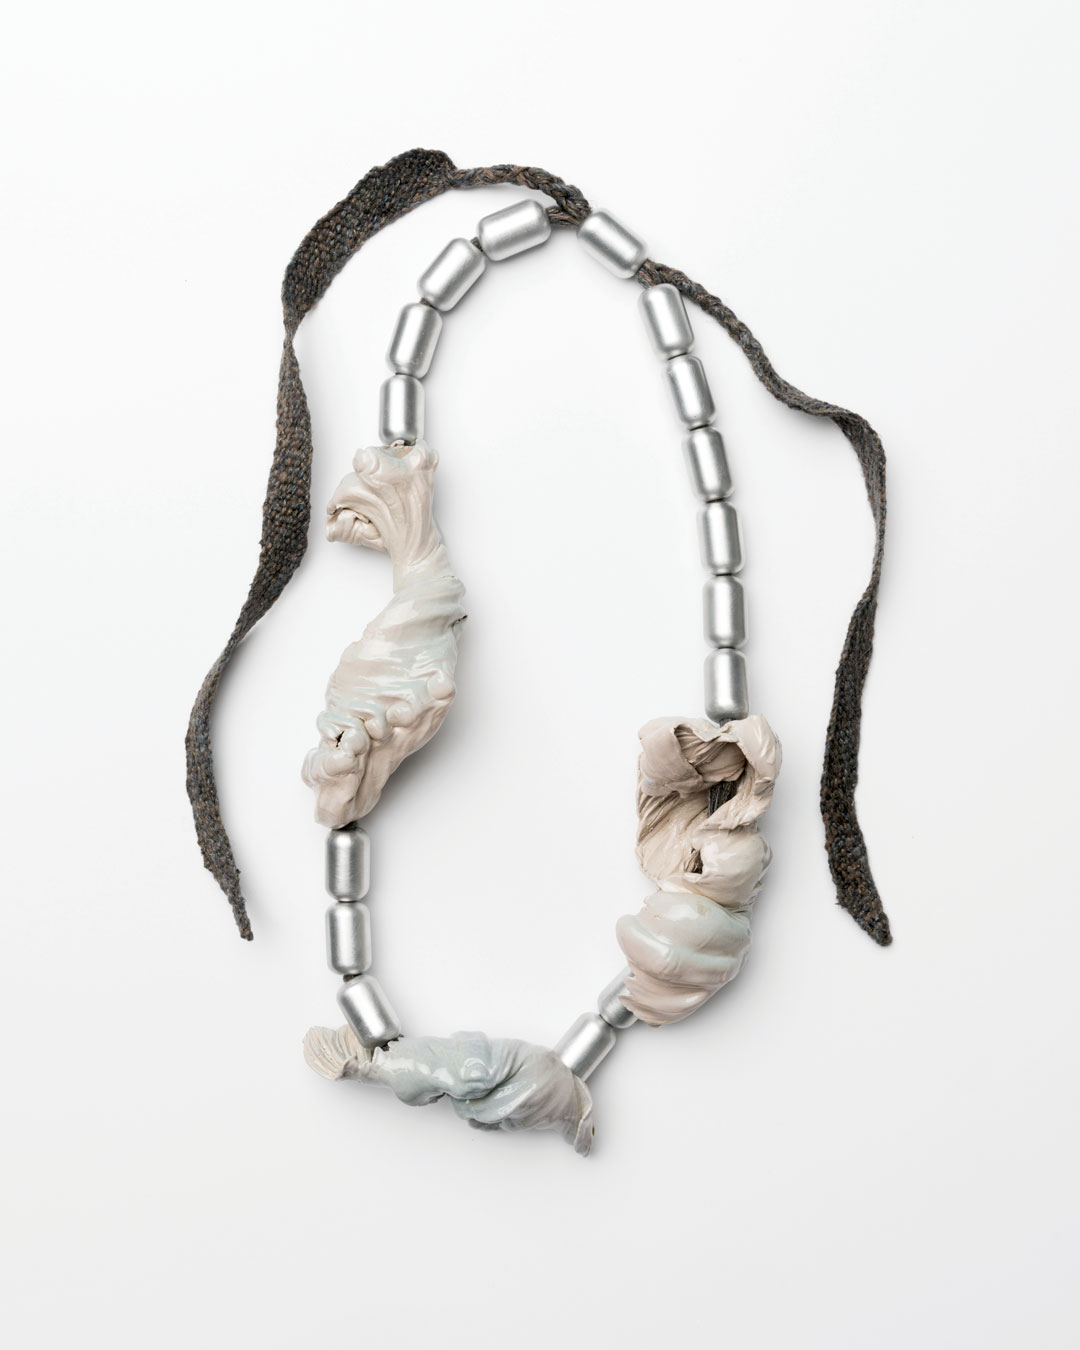 Ineke Heerkens, Cold Gravity, 2017, necklace; linen, wool, viscose, silk, aluminium, ceramic, glaze, 390 x 180 x 65 mm, €2300